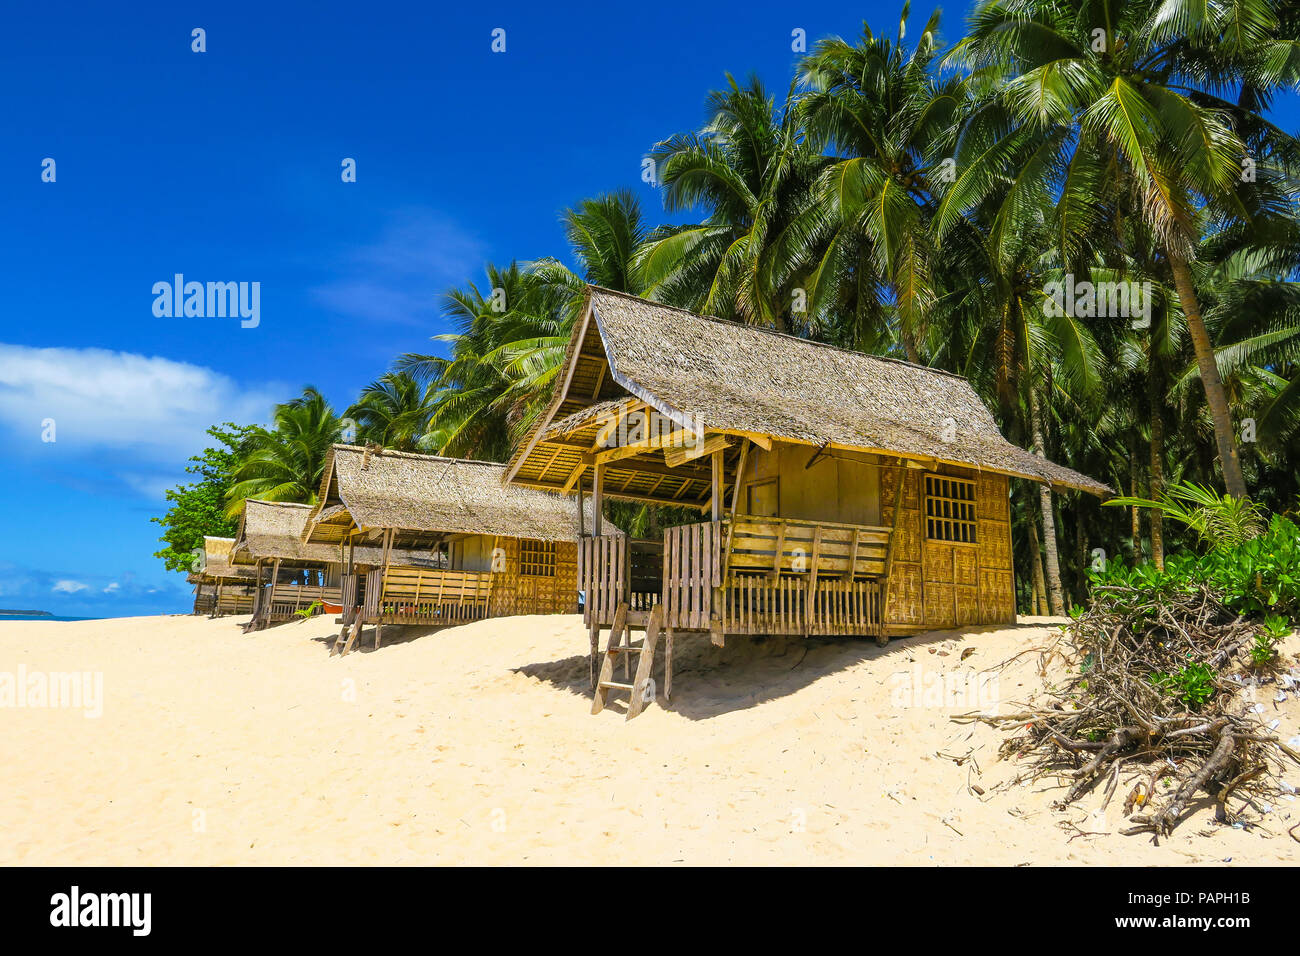 Tropical Beach Huts: Bamboo Beach Huts In Tropical Paradise With Palm Trees And